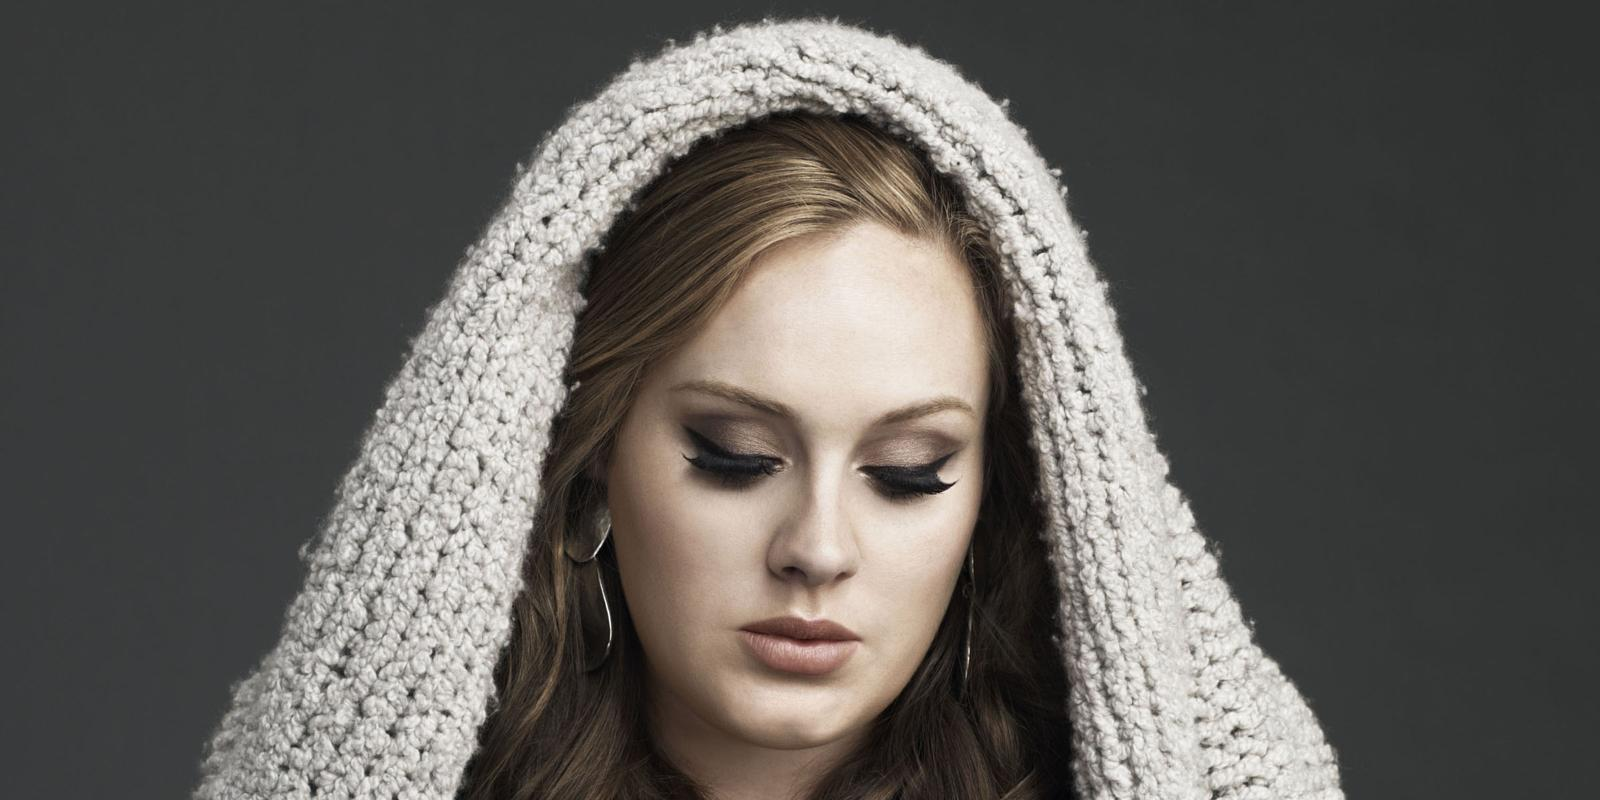 Leaked Downloads Of Adele's New Album '25' Fill Kickass